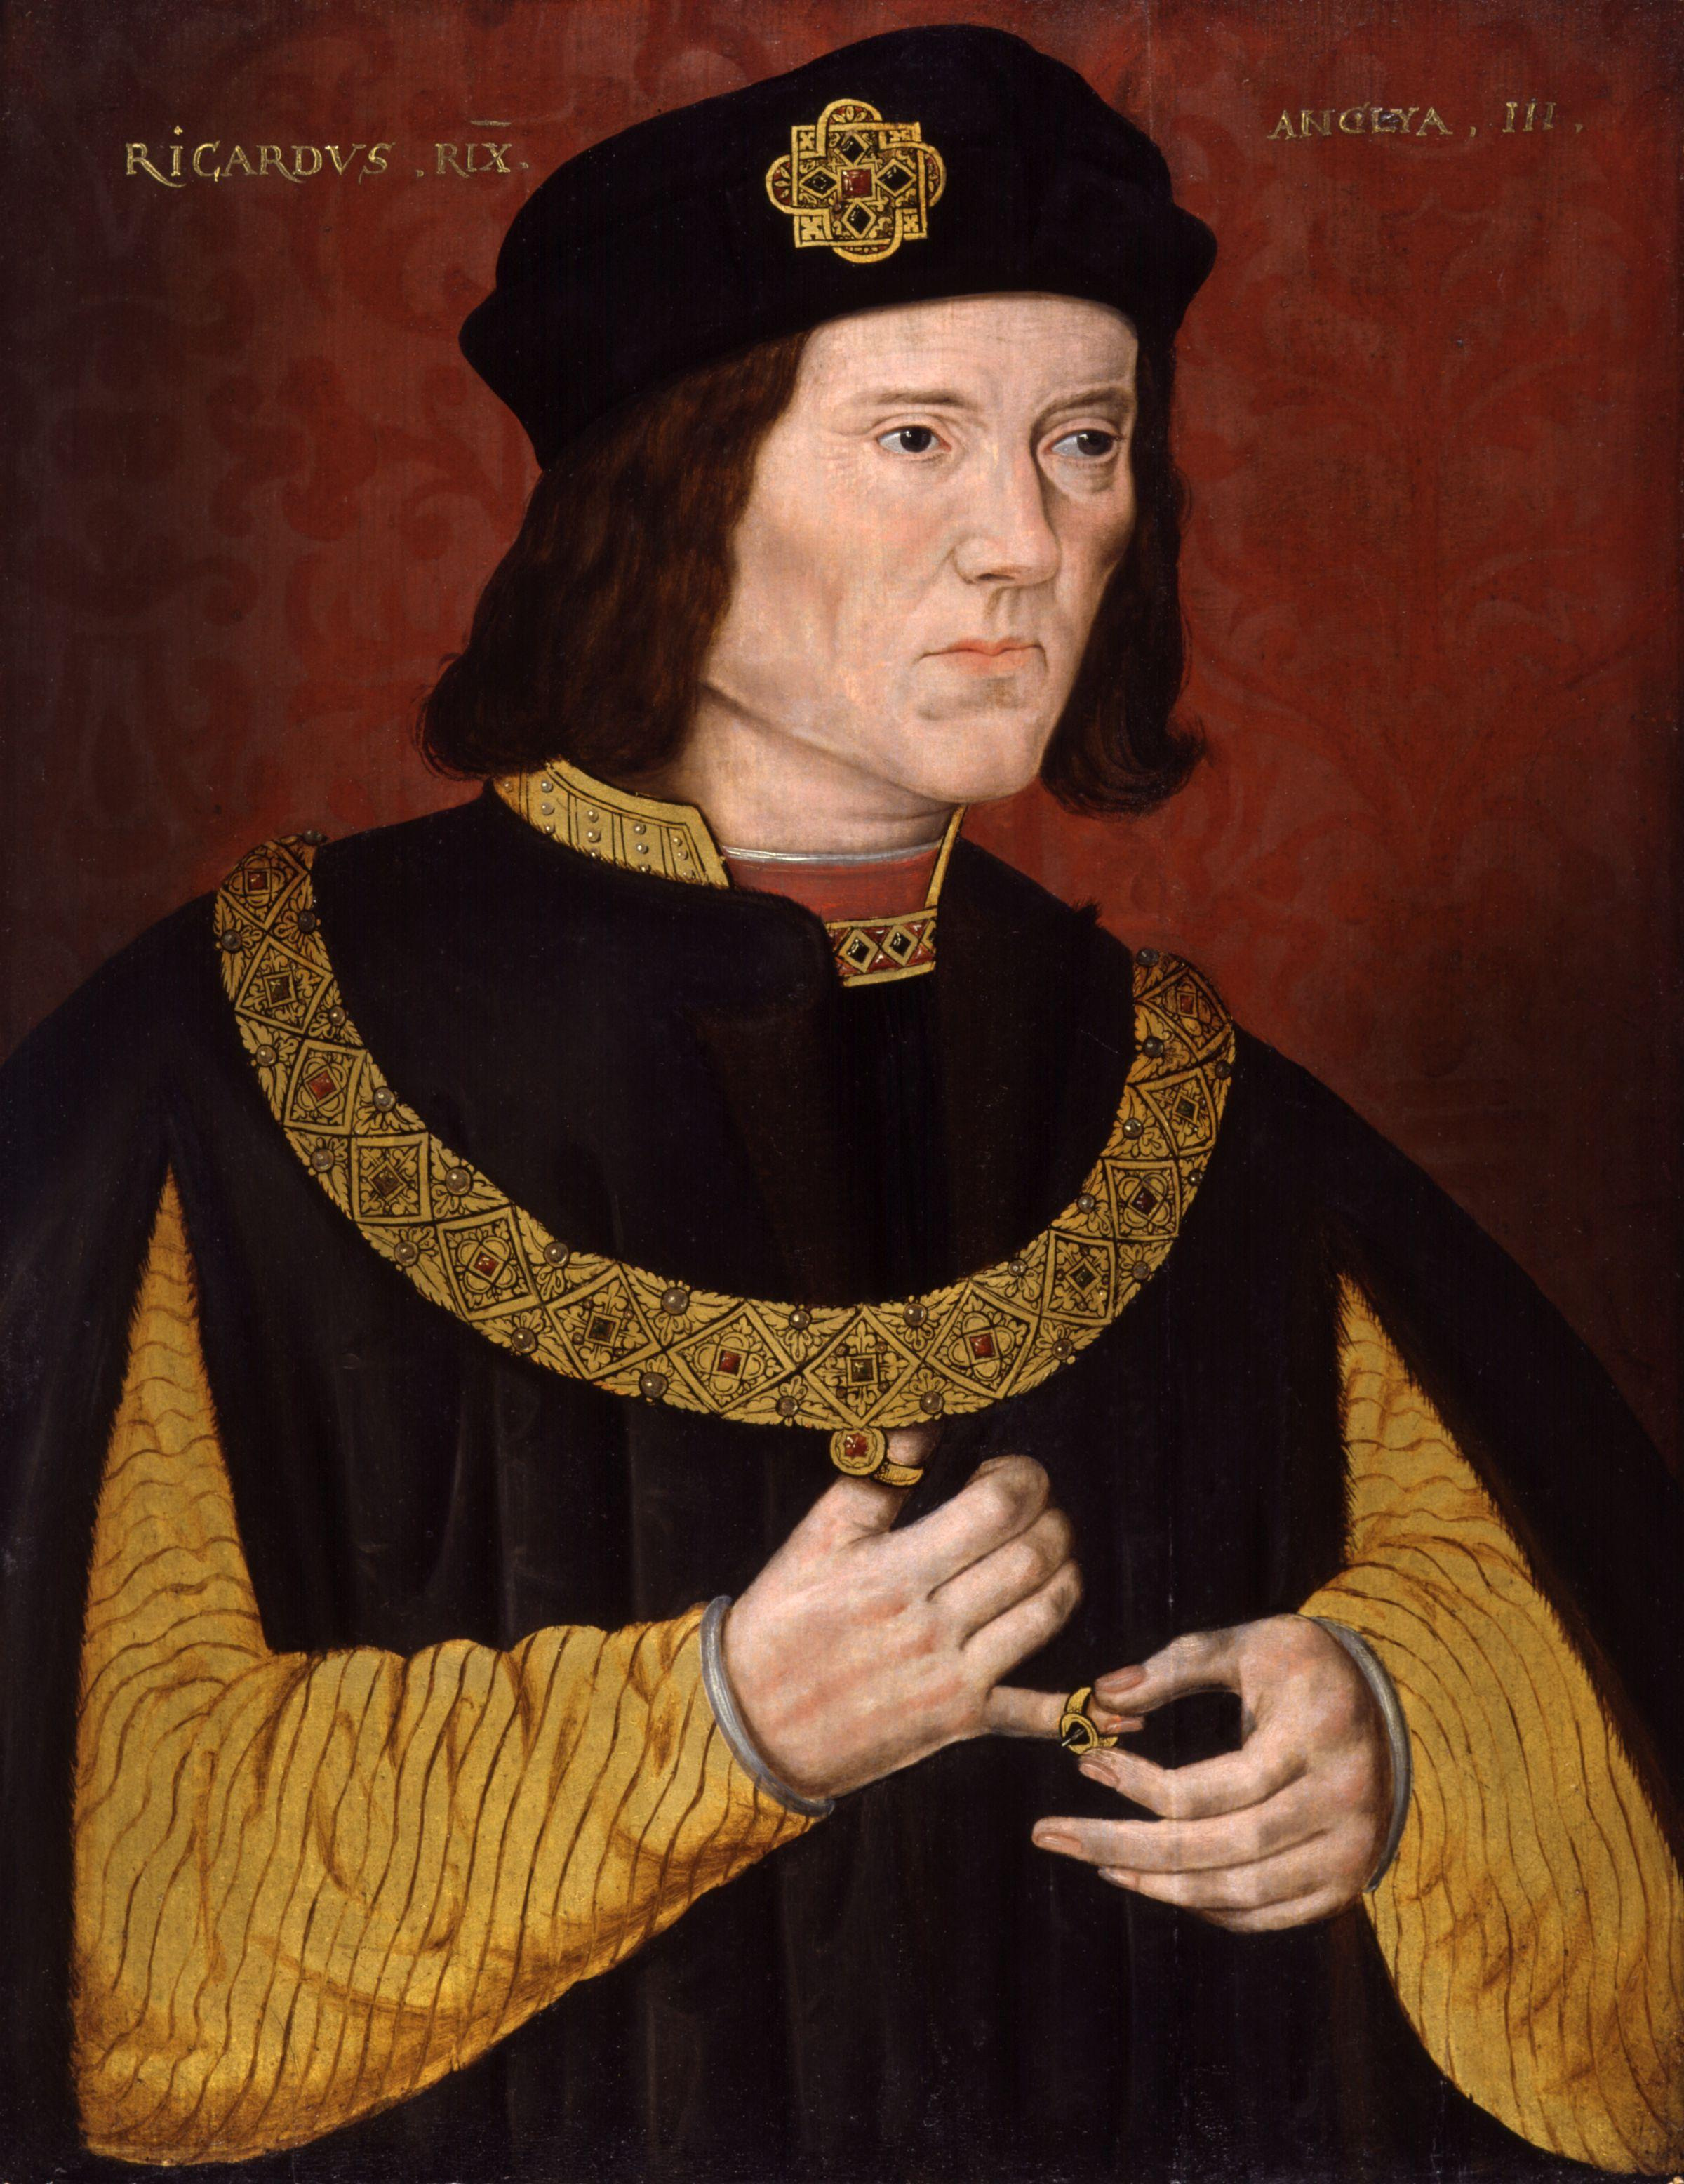 King Richard III, portrait by unknown artist, hung in National Portrait Gallery